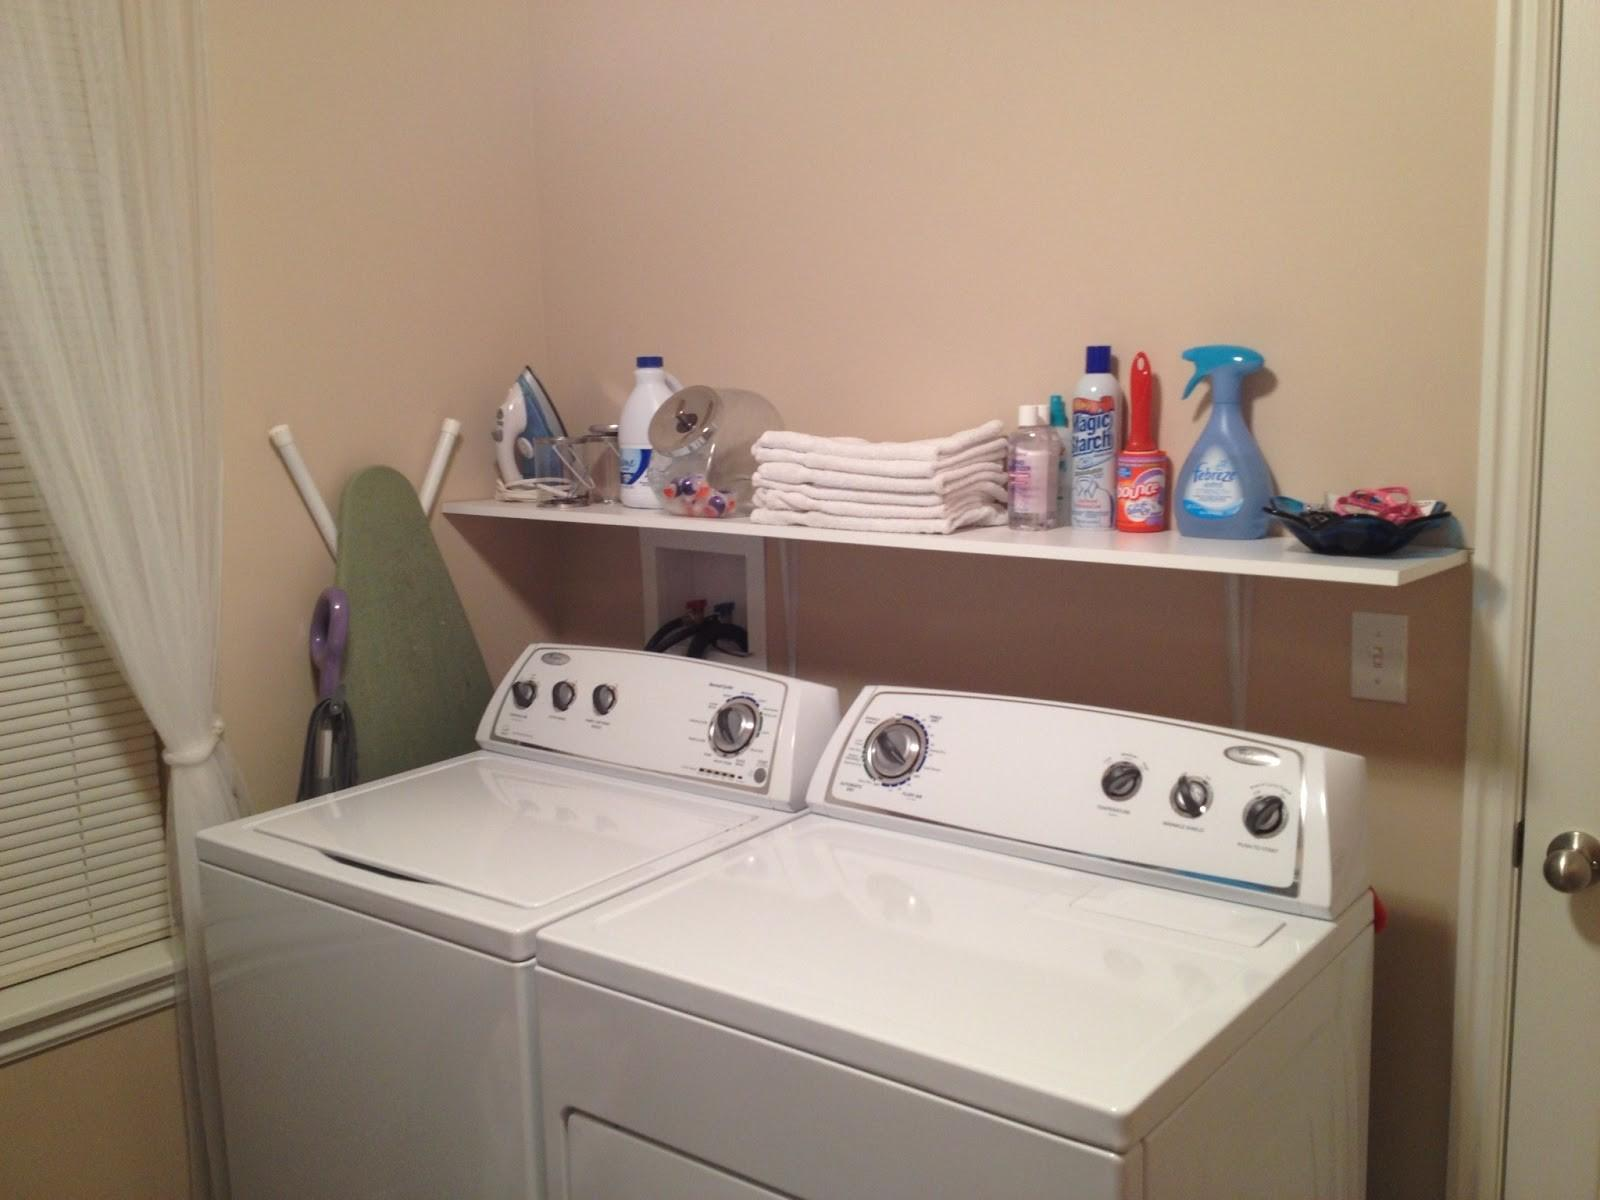 Shelves Laundry Room Comfy Home Design